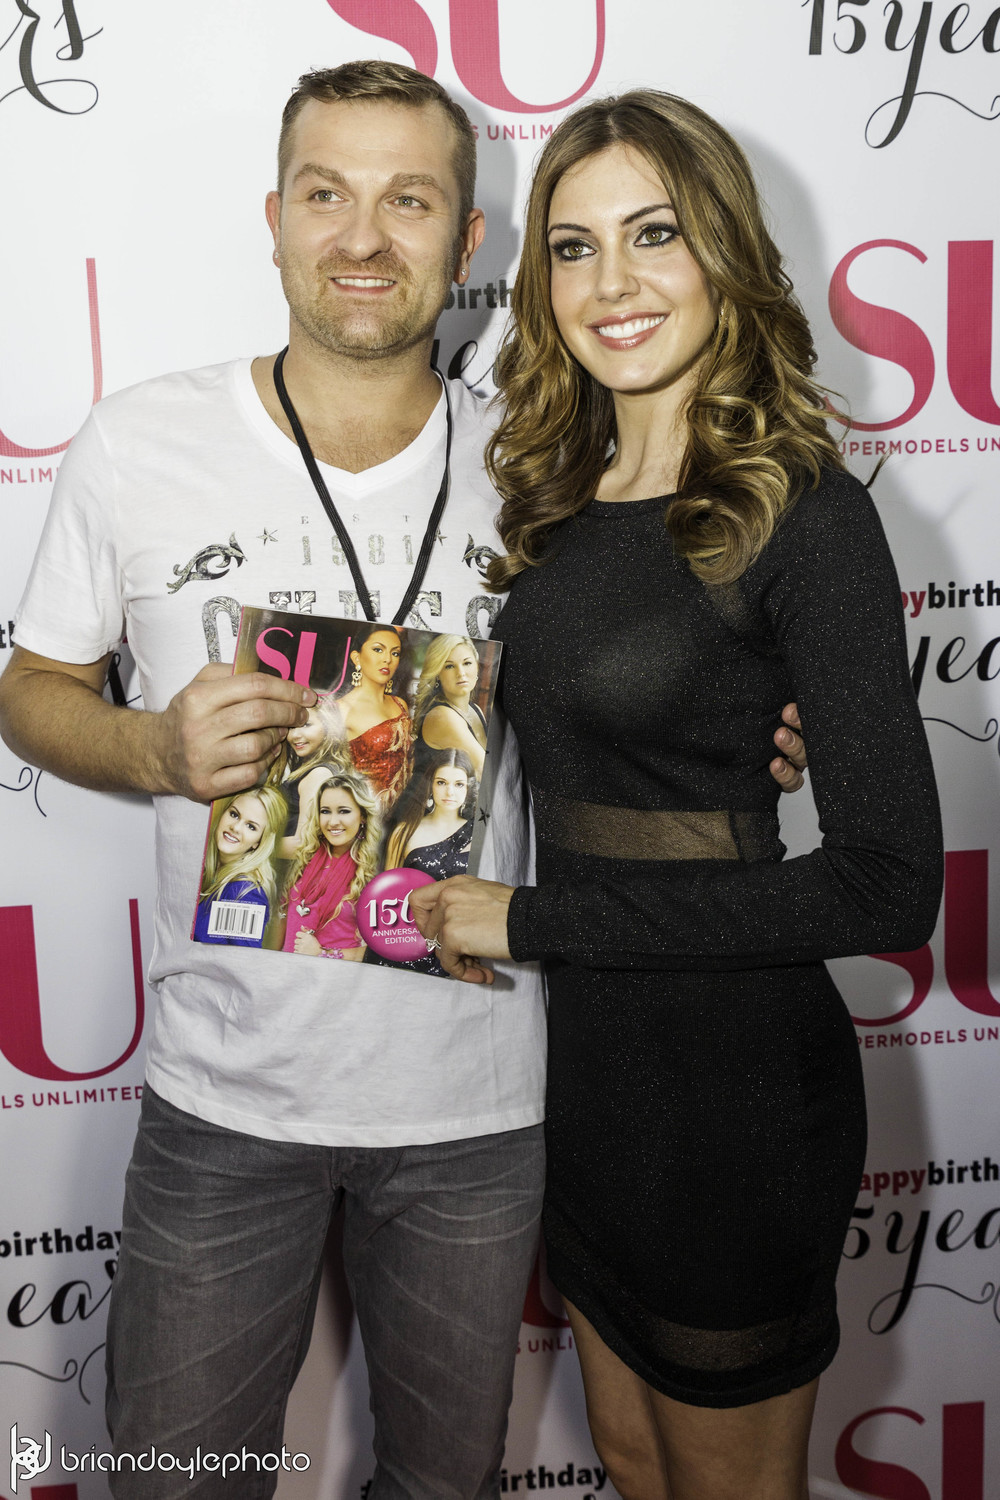 Tinashe @ Super Models Unlimited 15th Year Anniversary 31.01.2015-44.jpg